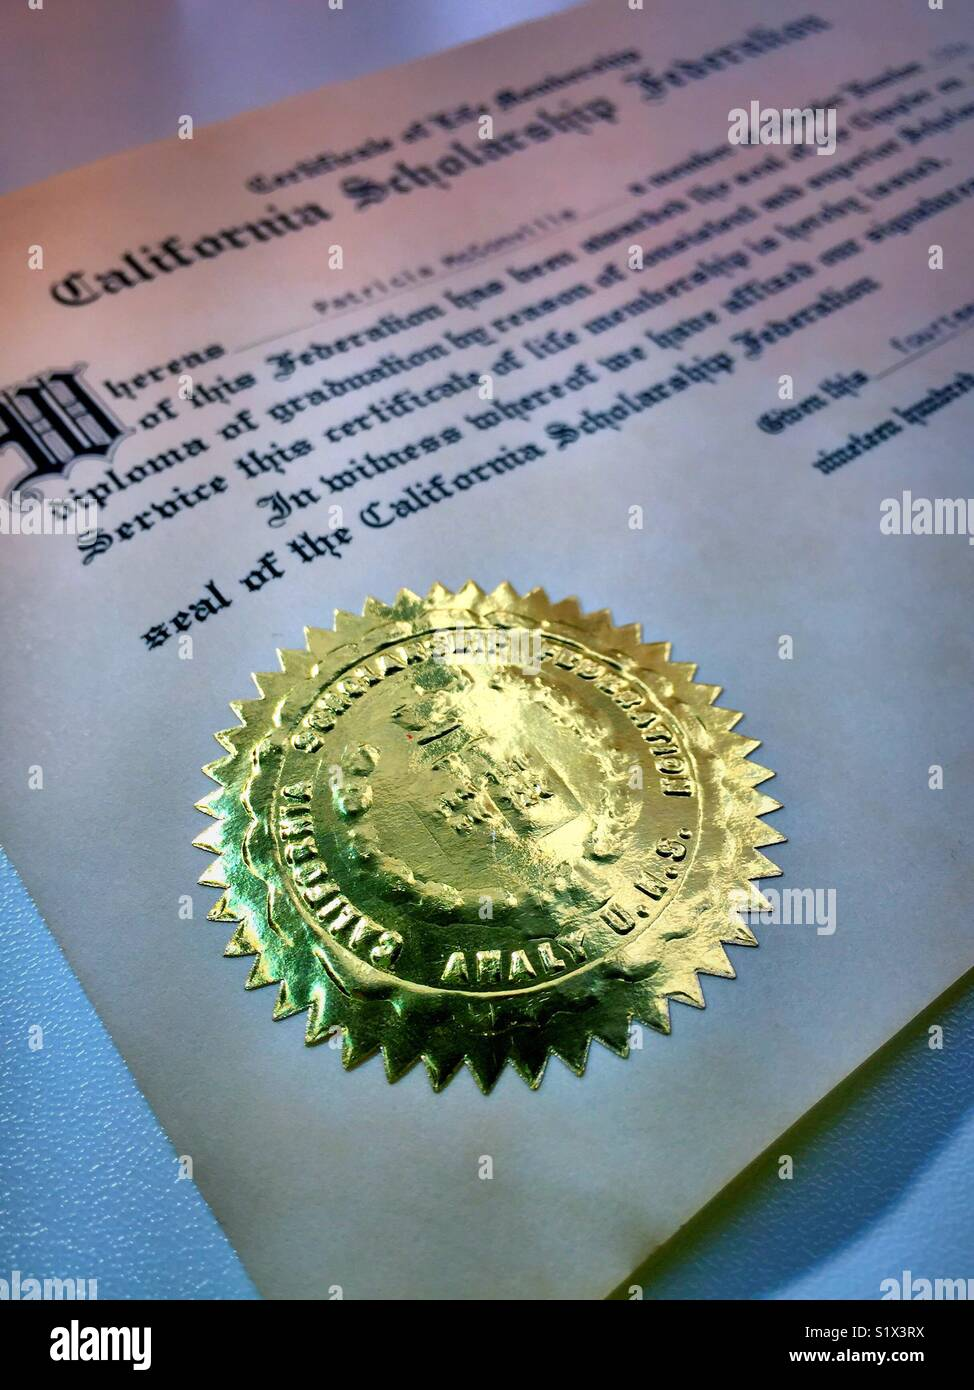 Gold embossed seal on California scholarship Federation certificate, United States. - Stock Image